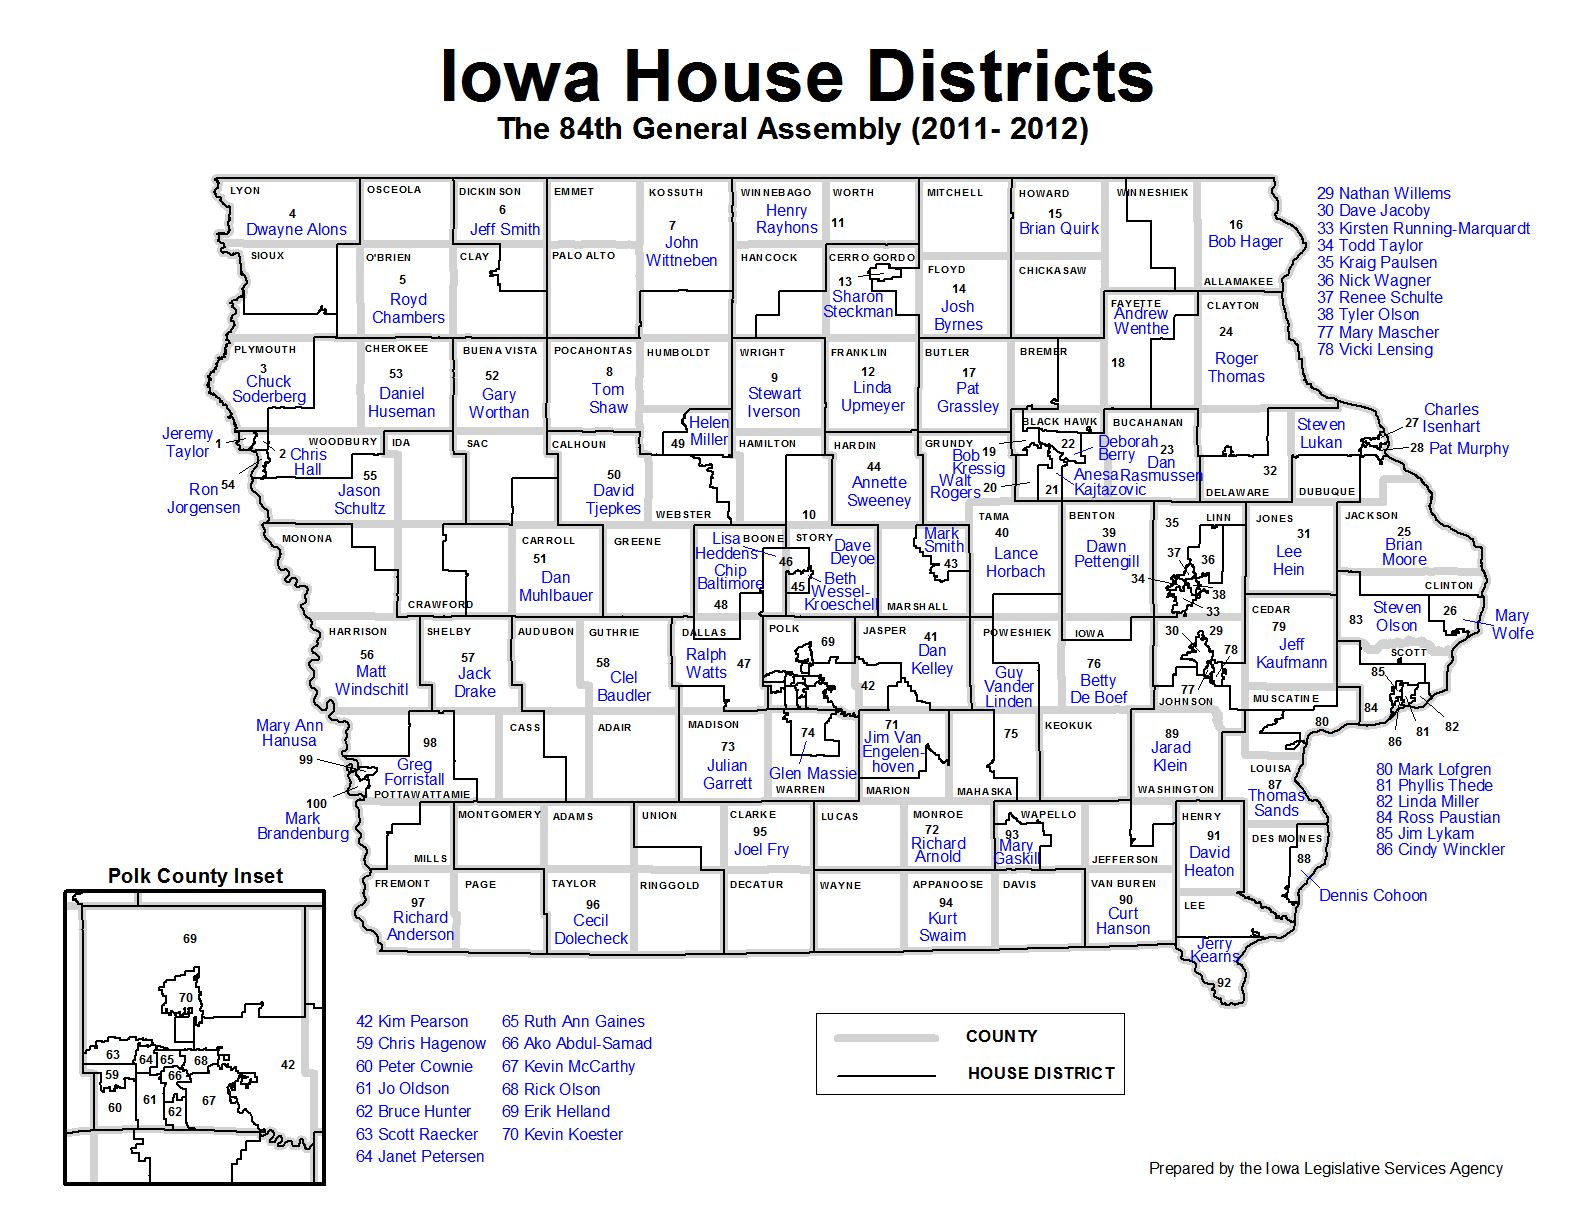 John Deeth Blog District Of The Day Reboot Iowa Senate